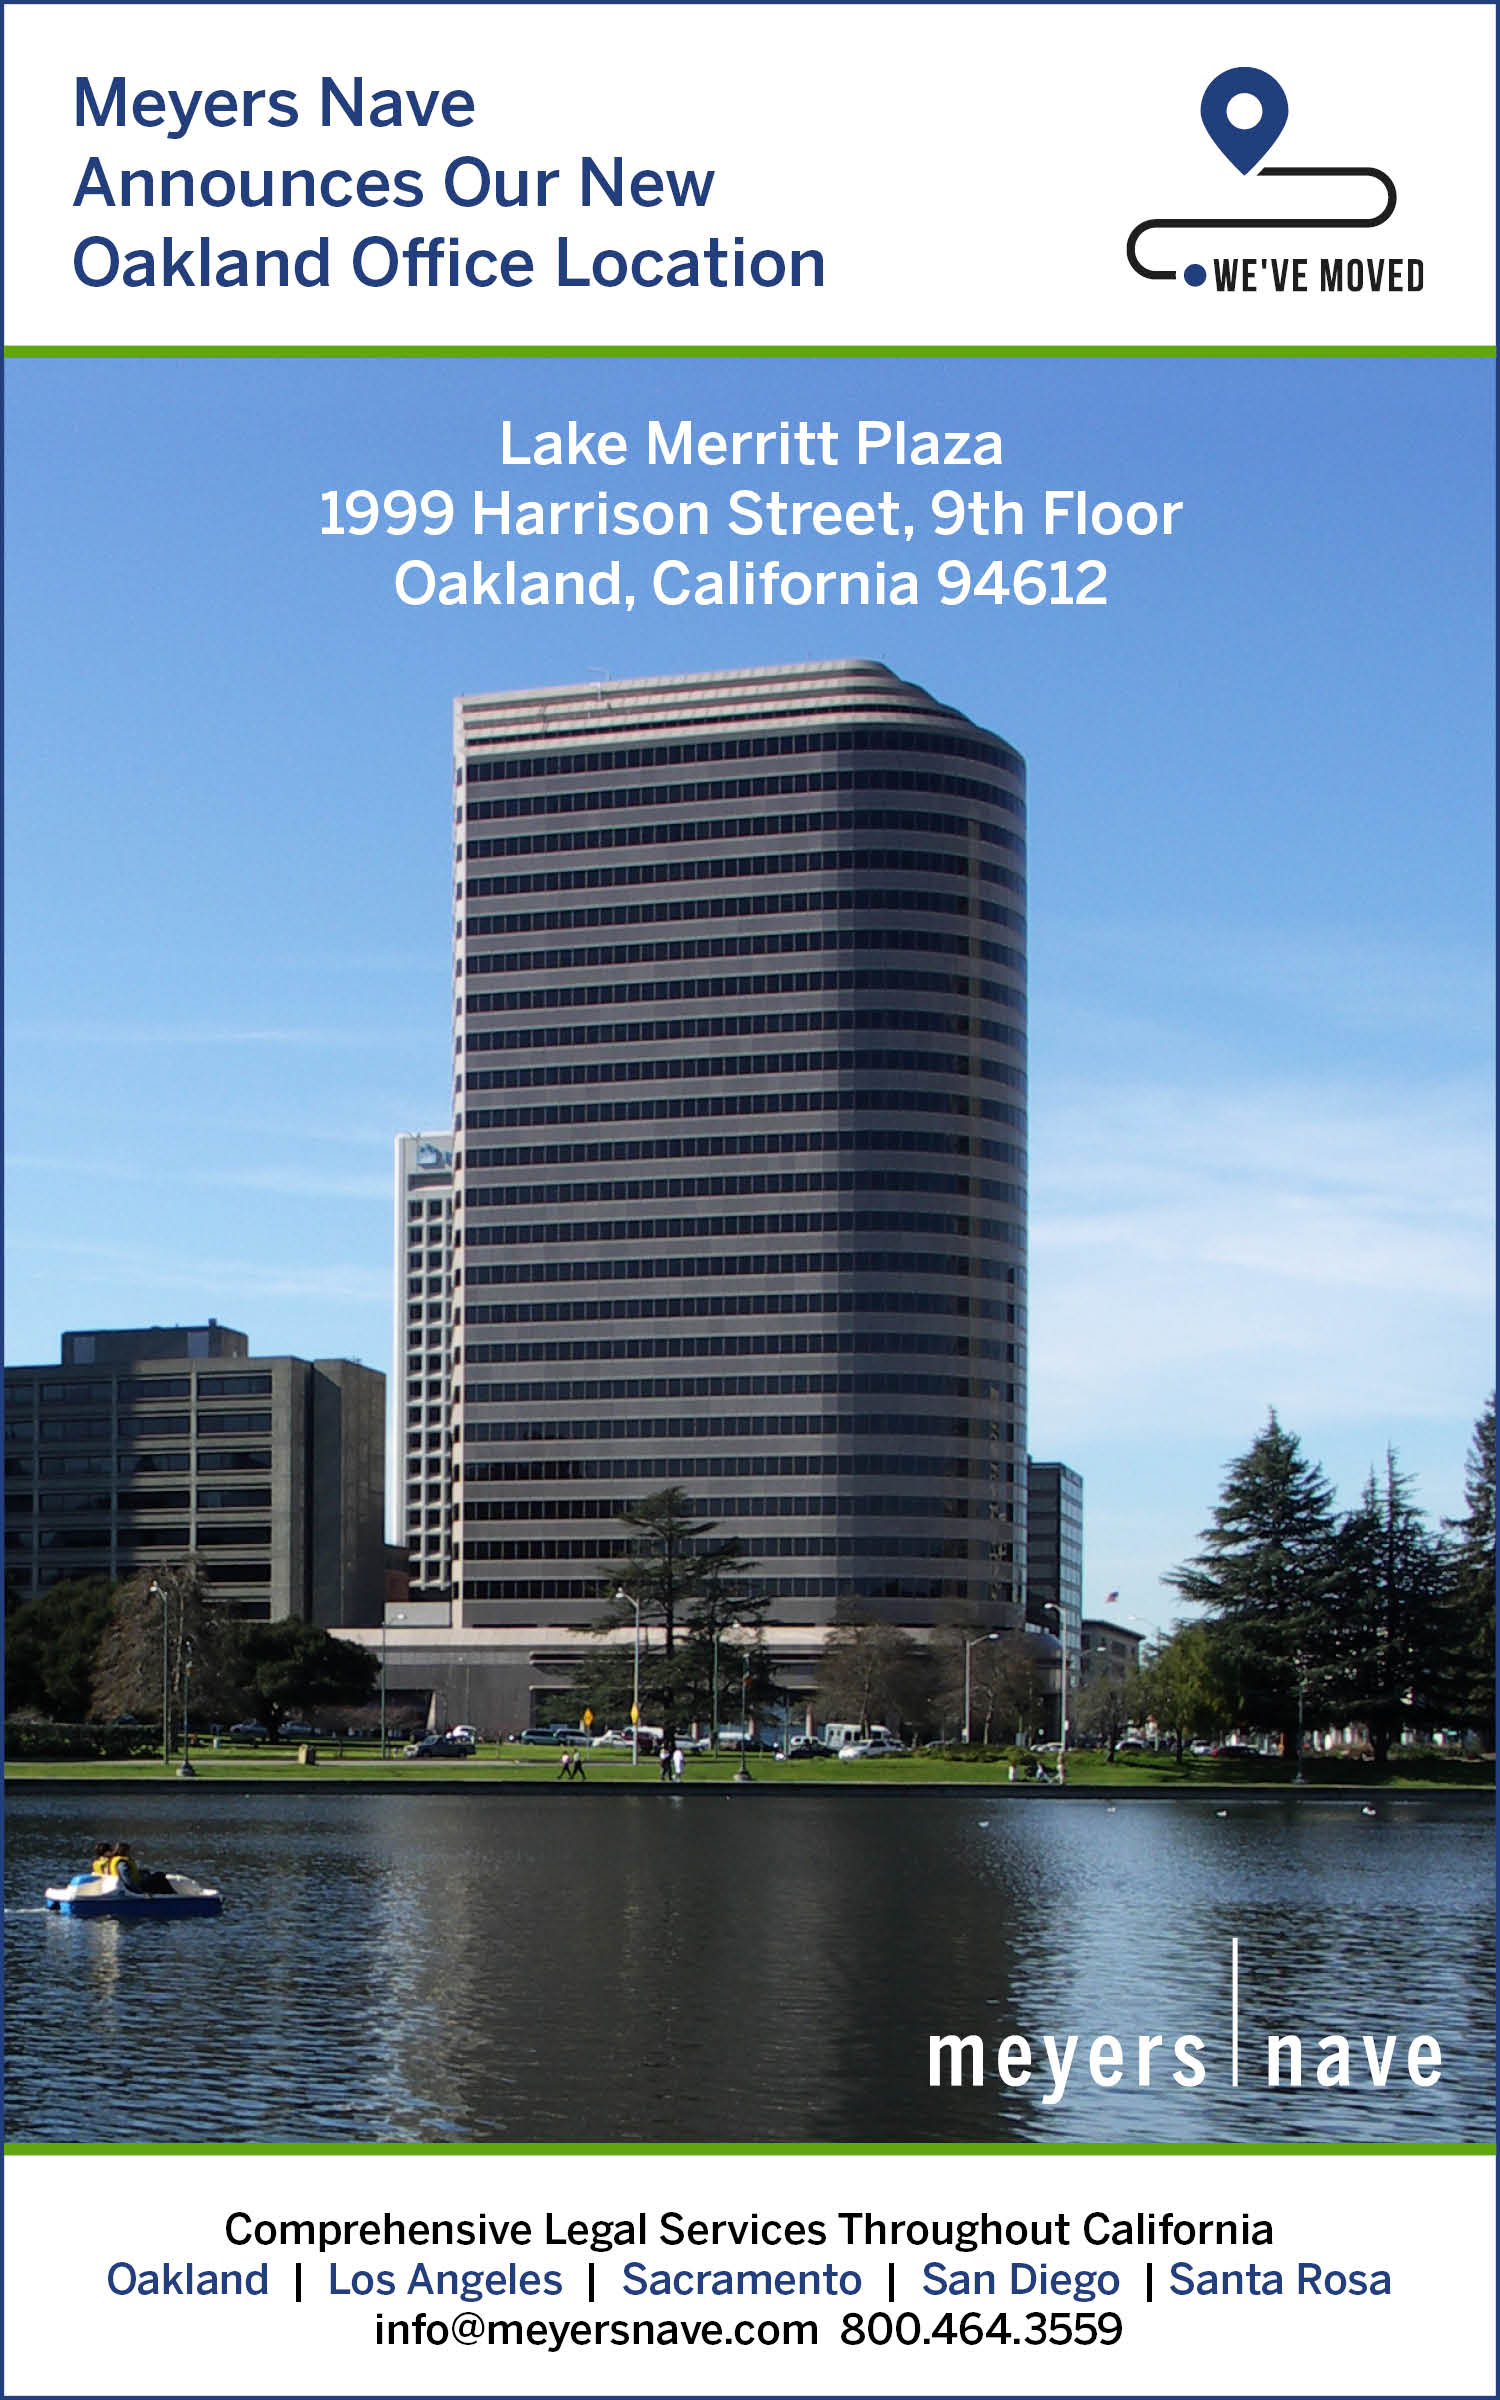 Oakland Office Move Announcement Image